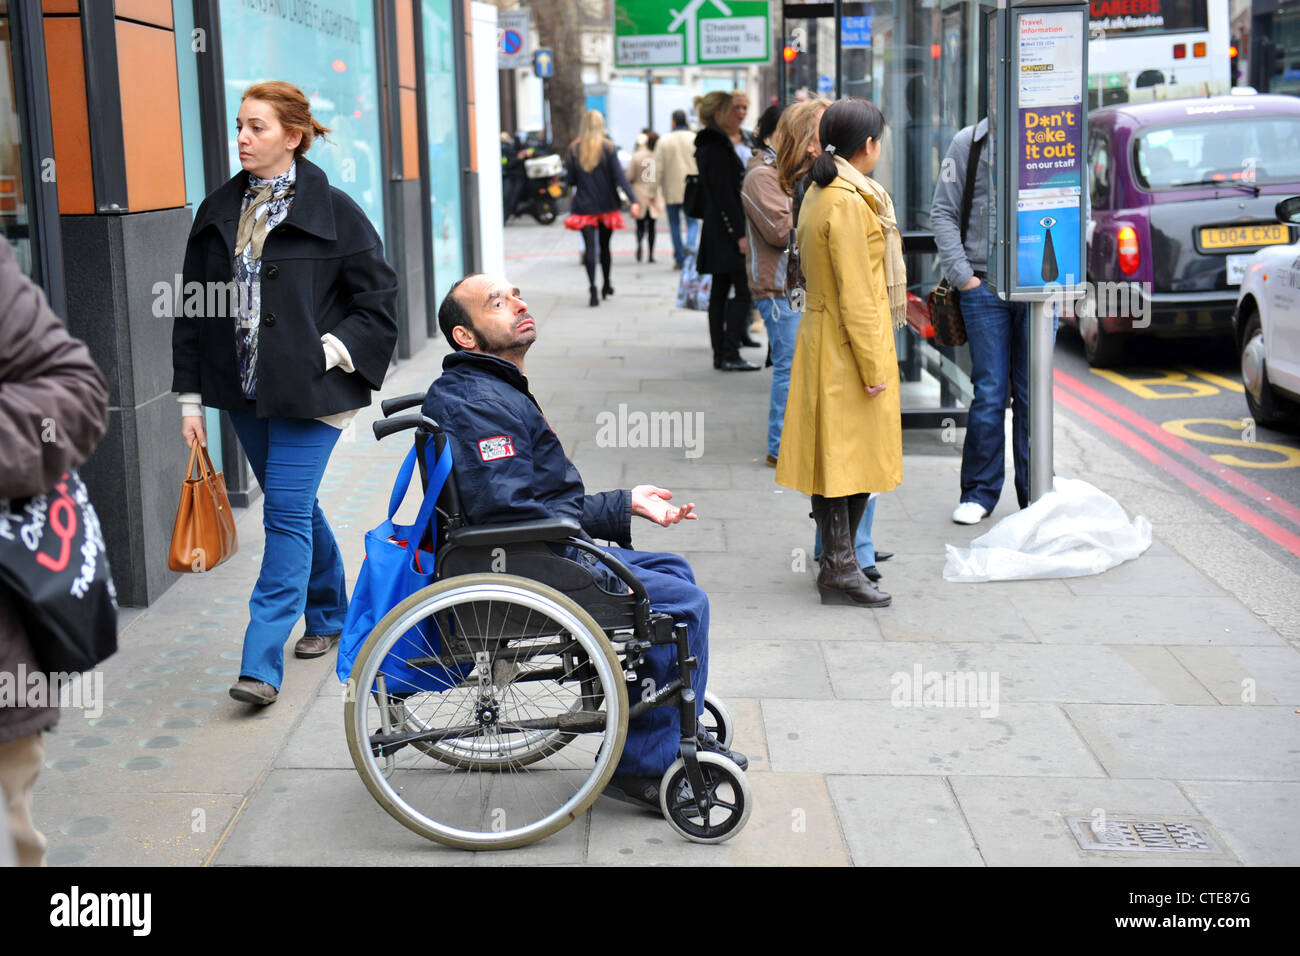 A disabled man begs from his wheelchair in Knightsbridge London. - Stock Image